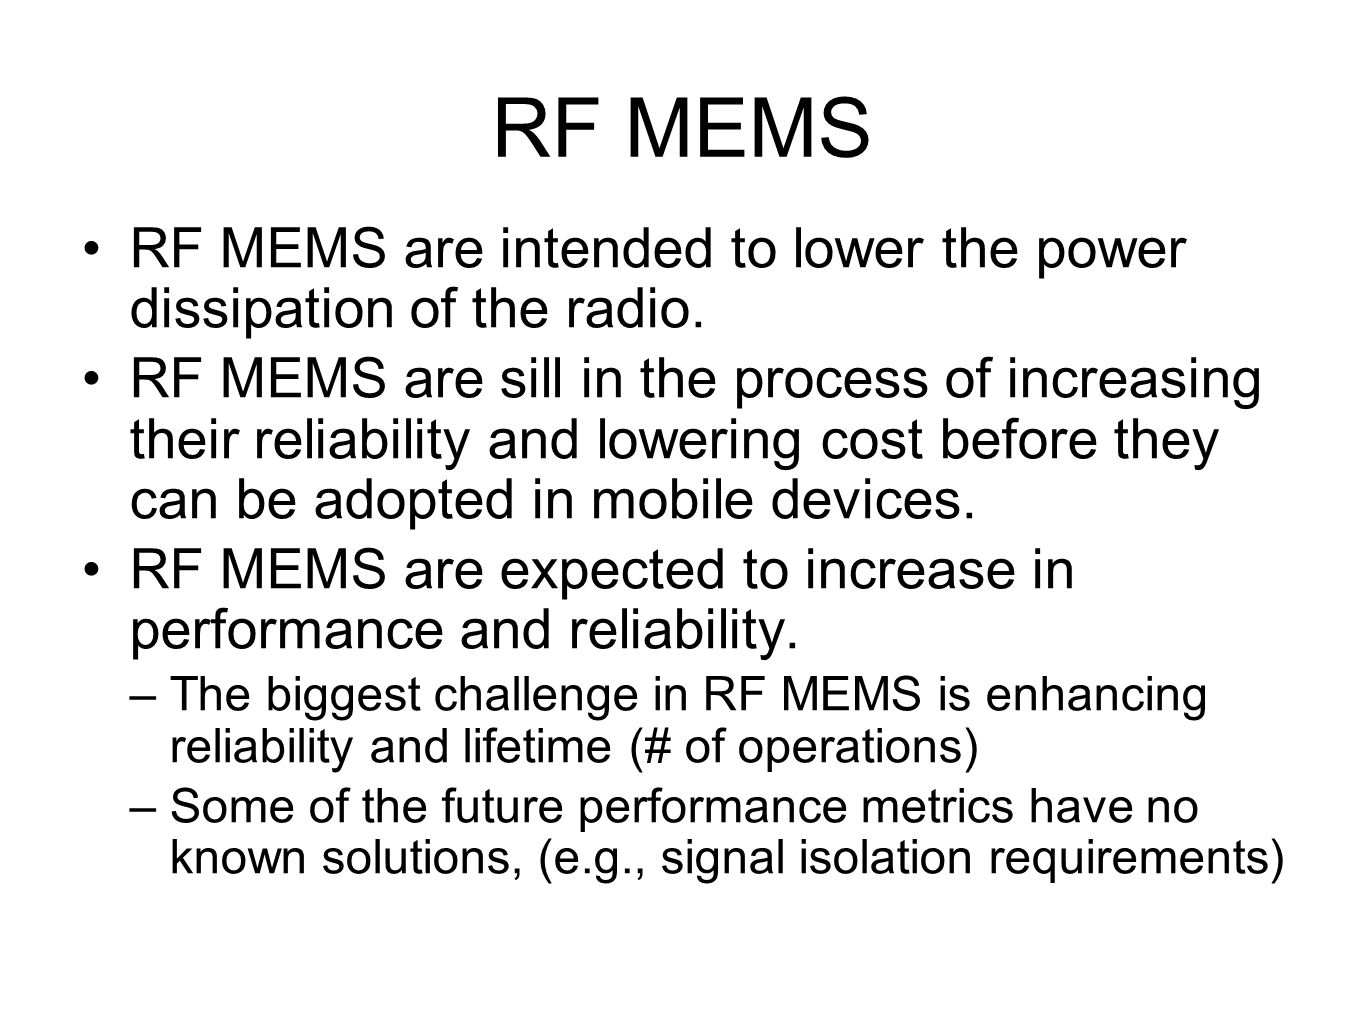 RF MEMS RF MEMS are intended to lower the power dissipation of the radio. RF MEMS are sill in the process of increasing their reliability and lowering